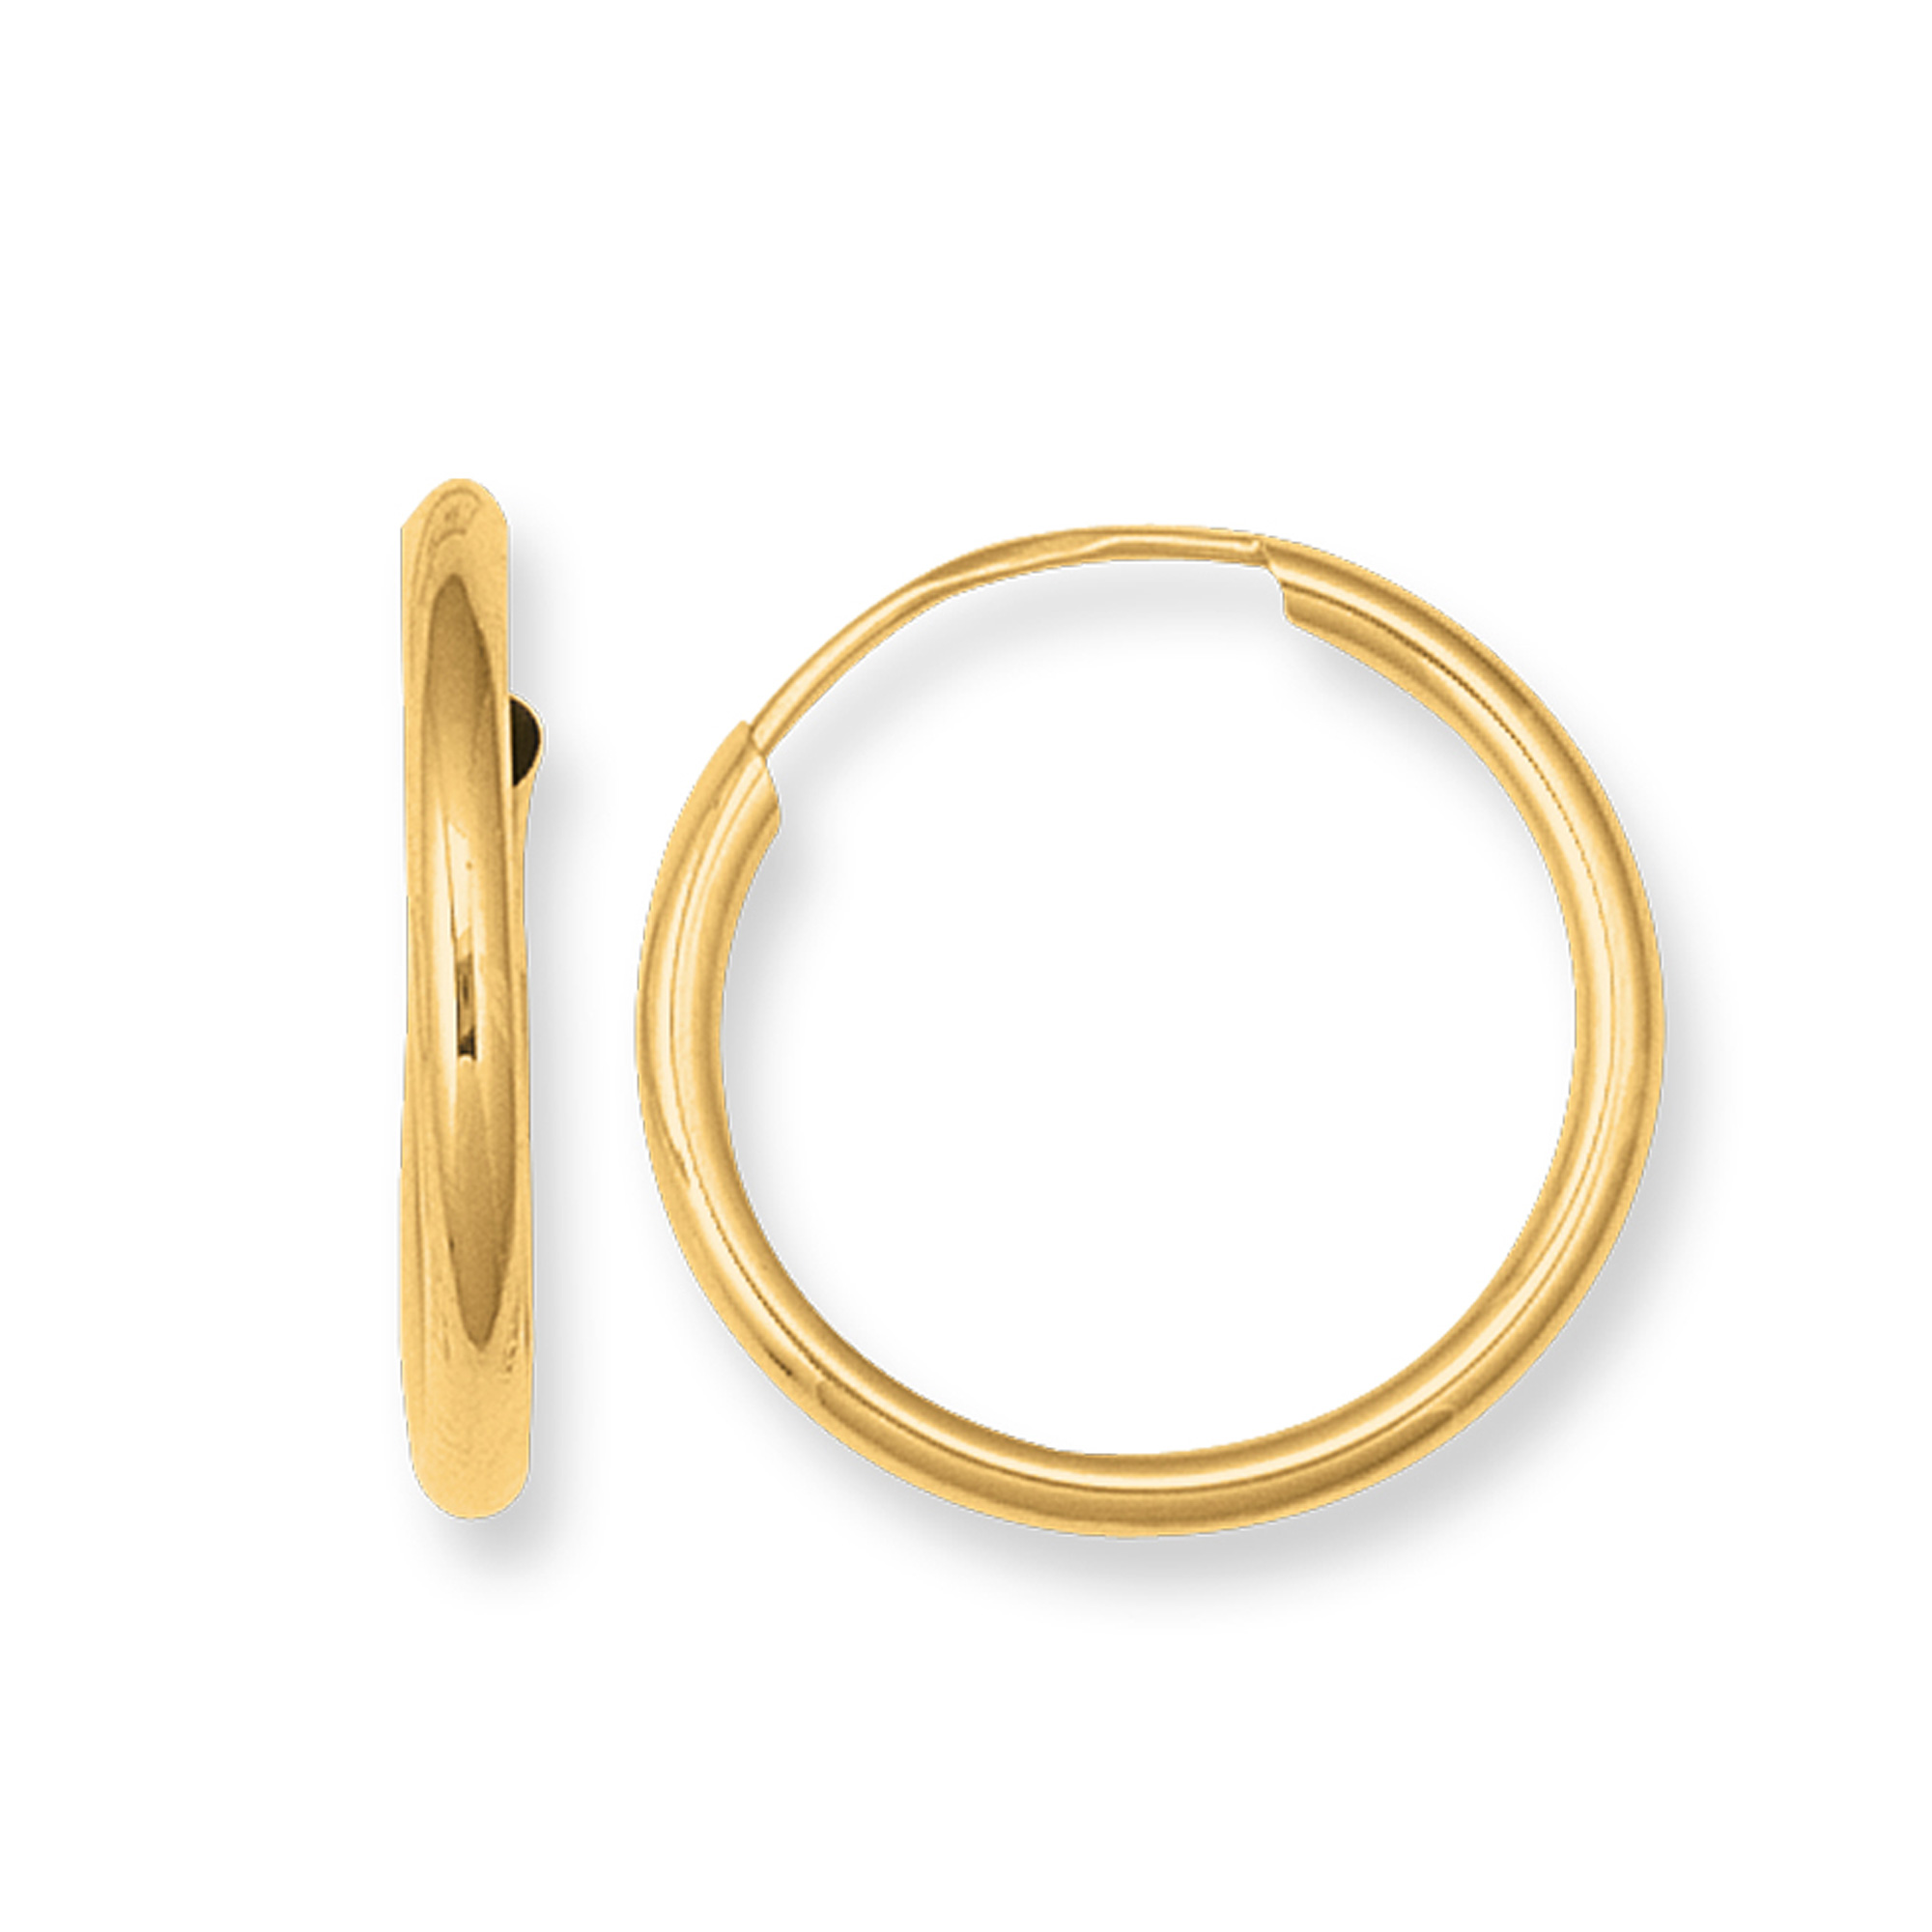 14K Yellow Gold Endless Round Hoop Earrings, 10mm Complete your jewelry collection with a gorgeous pair of 14K endless earrings. These earrings have a secure snap post clasp making them easy to wear and remove. Earrings come in a  gift box making them ready to be gifted.